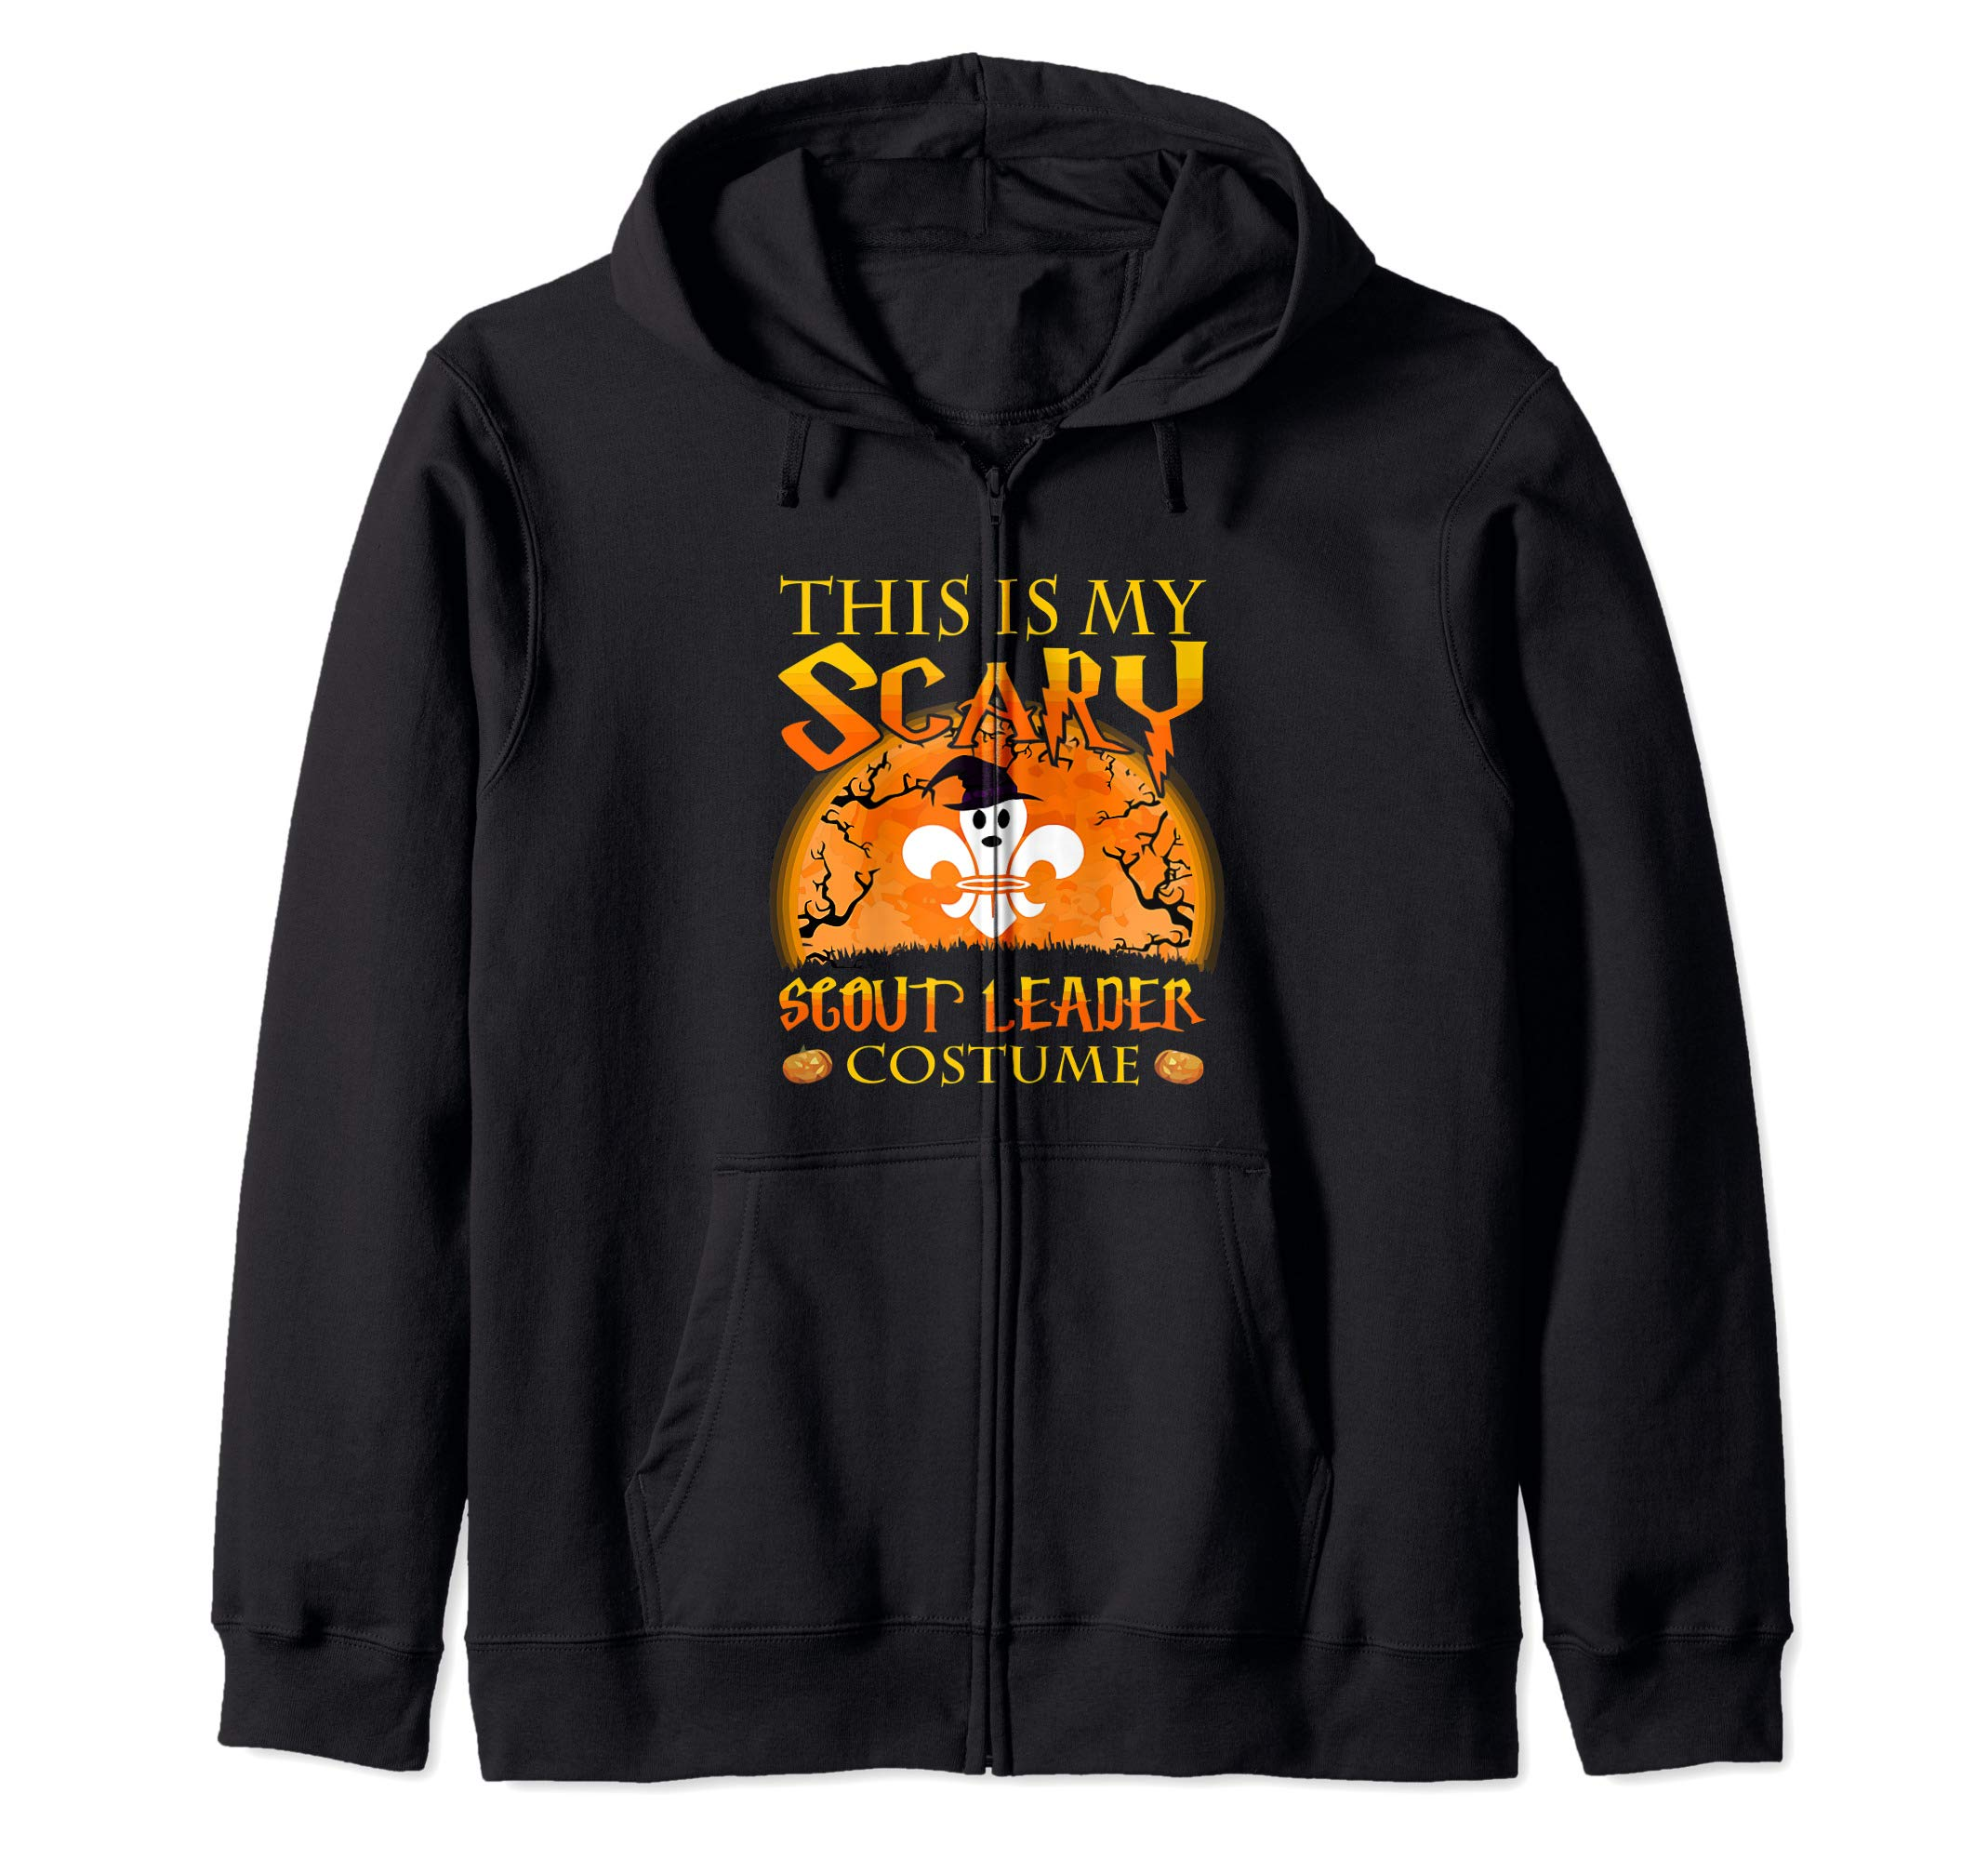 This Is My Scary Scout Lead Costume Scouting Camping Gift Zip Hoodie by Scouting Leader Halloween Costume